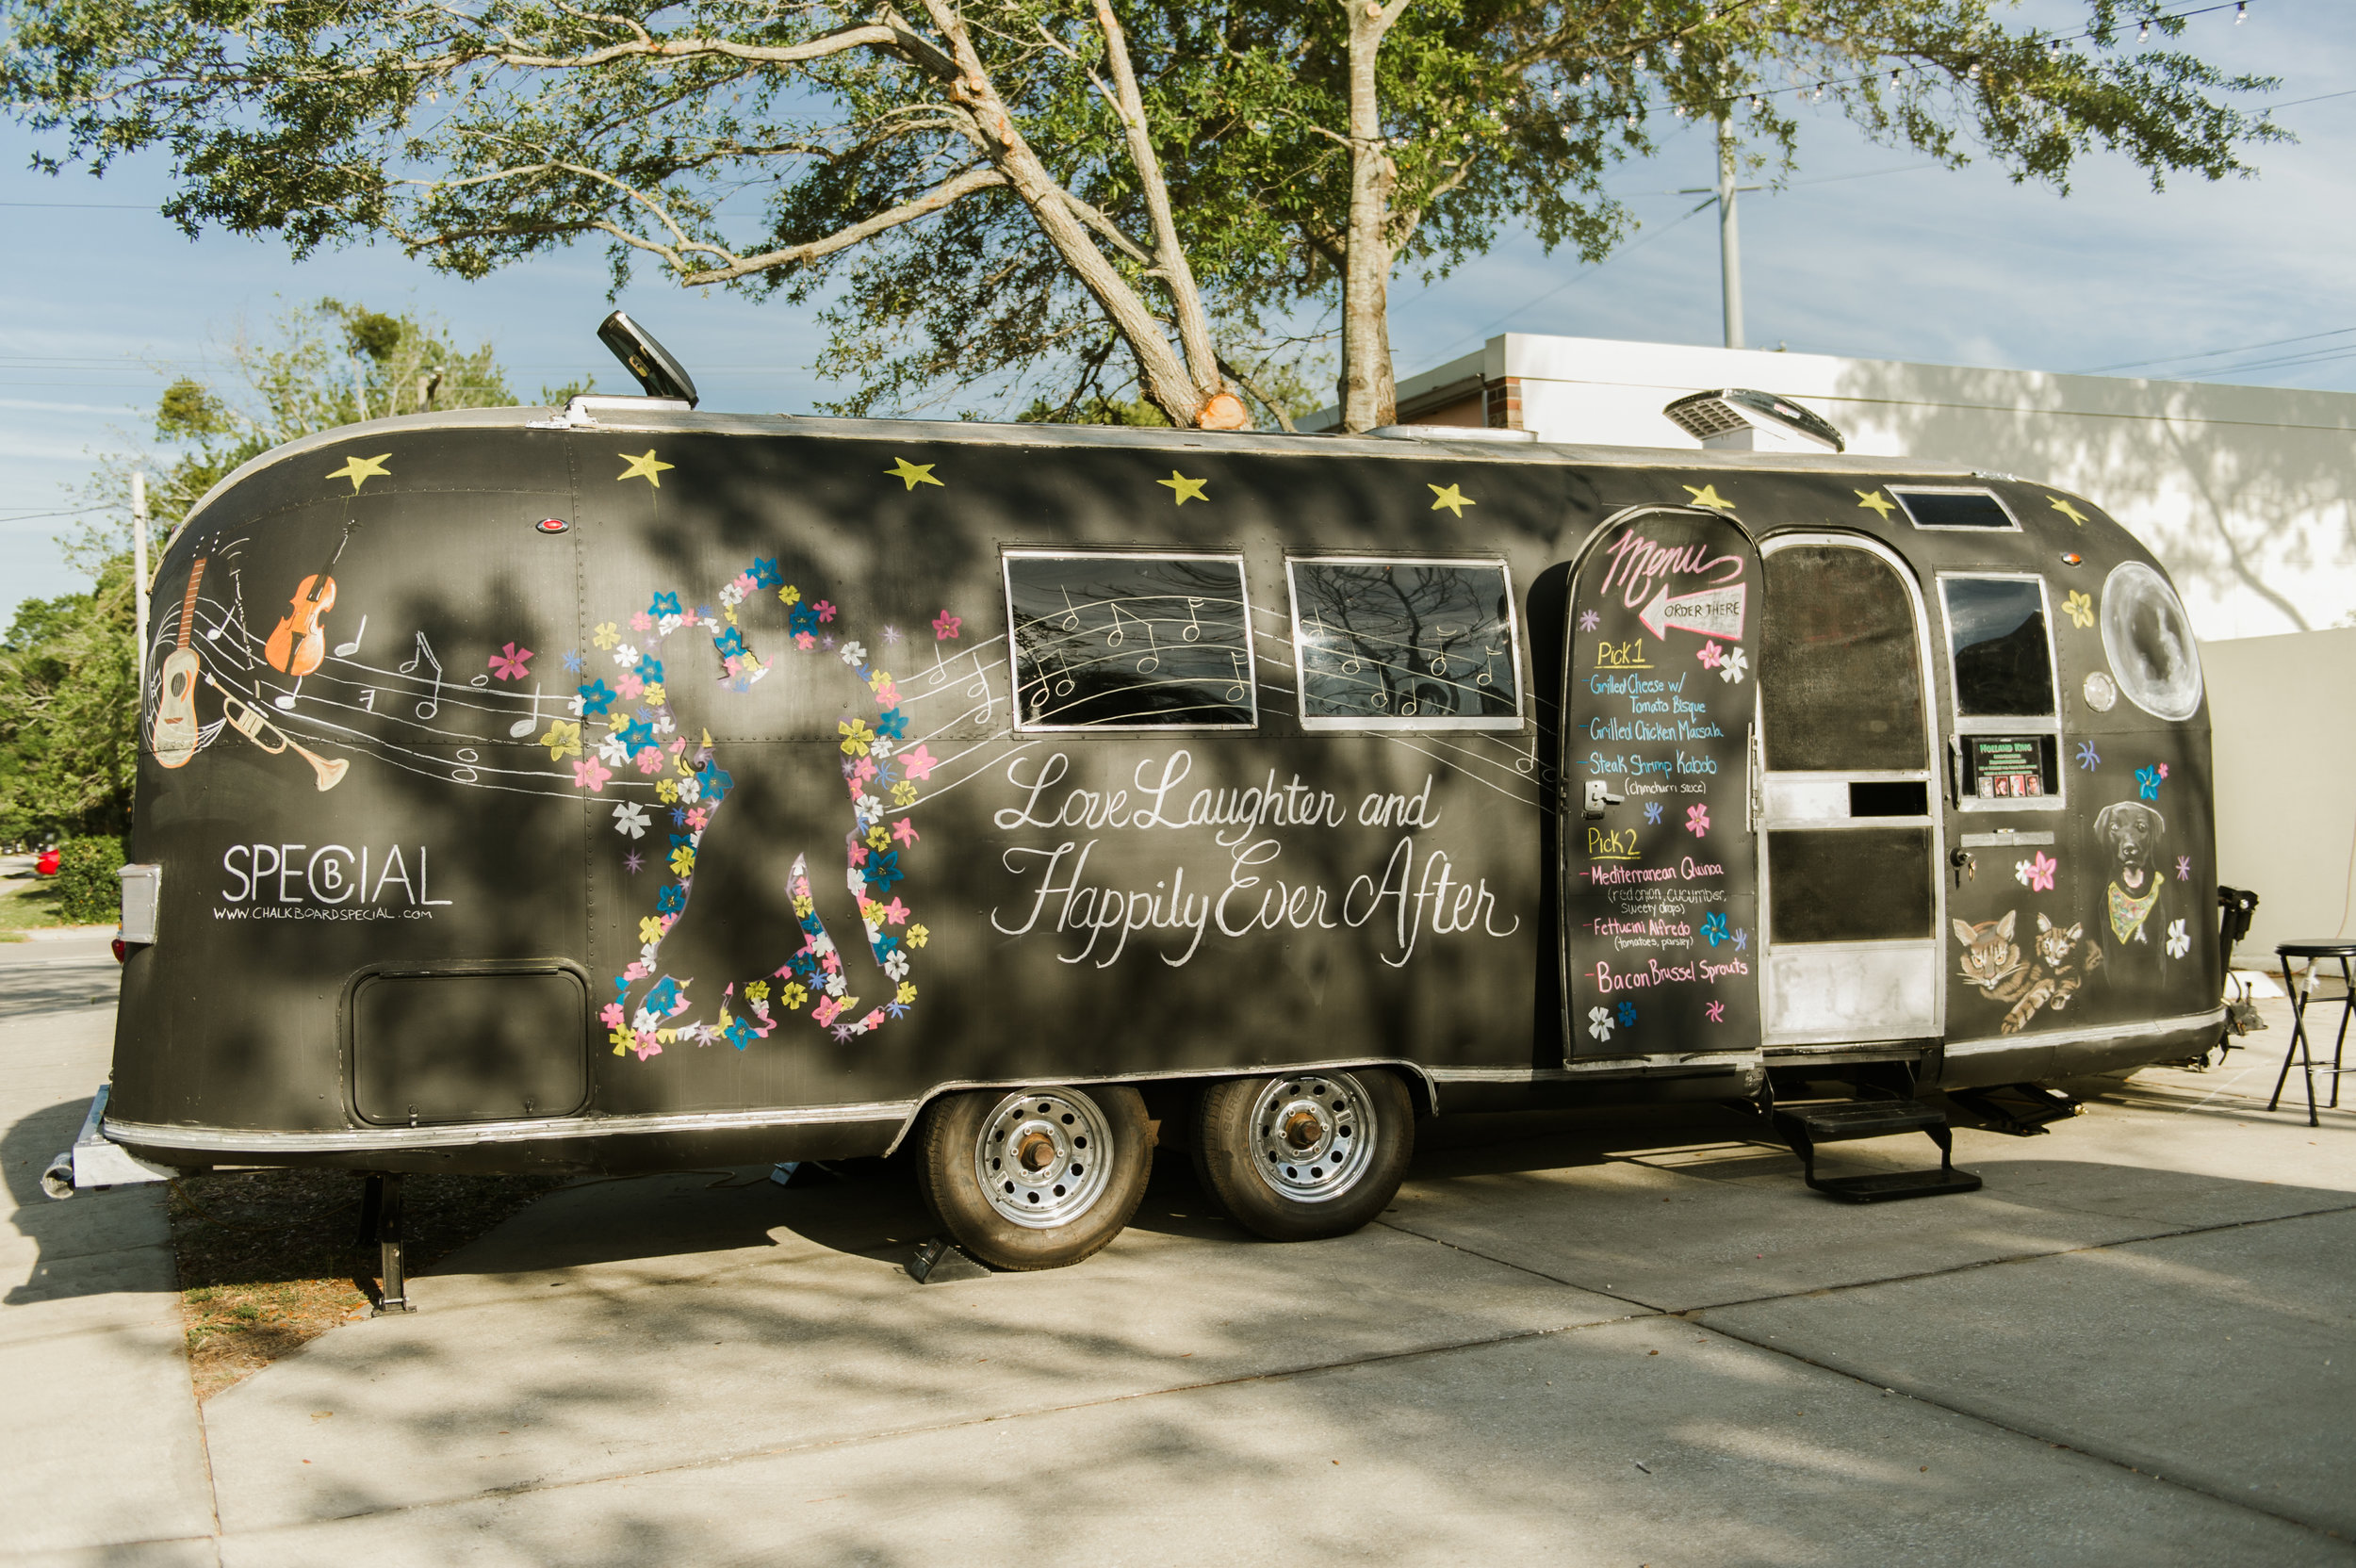 Guests enjoyed delicious food from a local food truck that featured a live chalk artist creating a one-of-a-kind masterpiece inspired by the bride and groom!